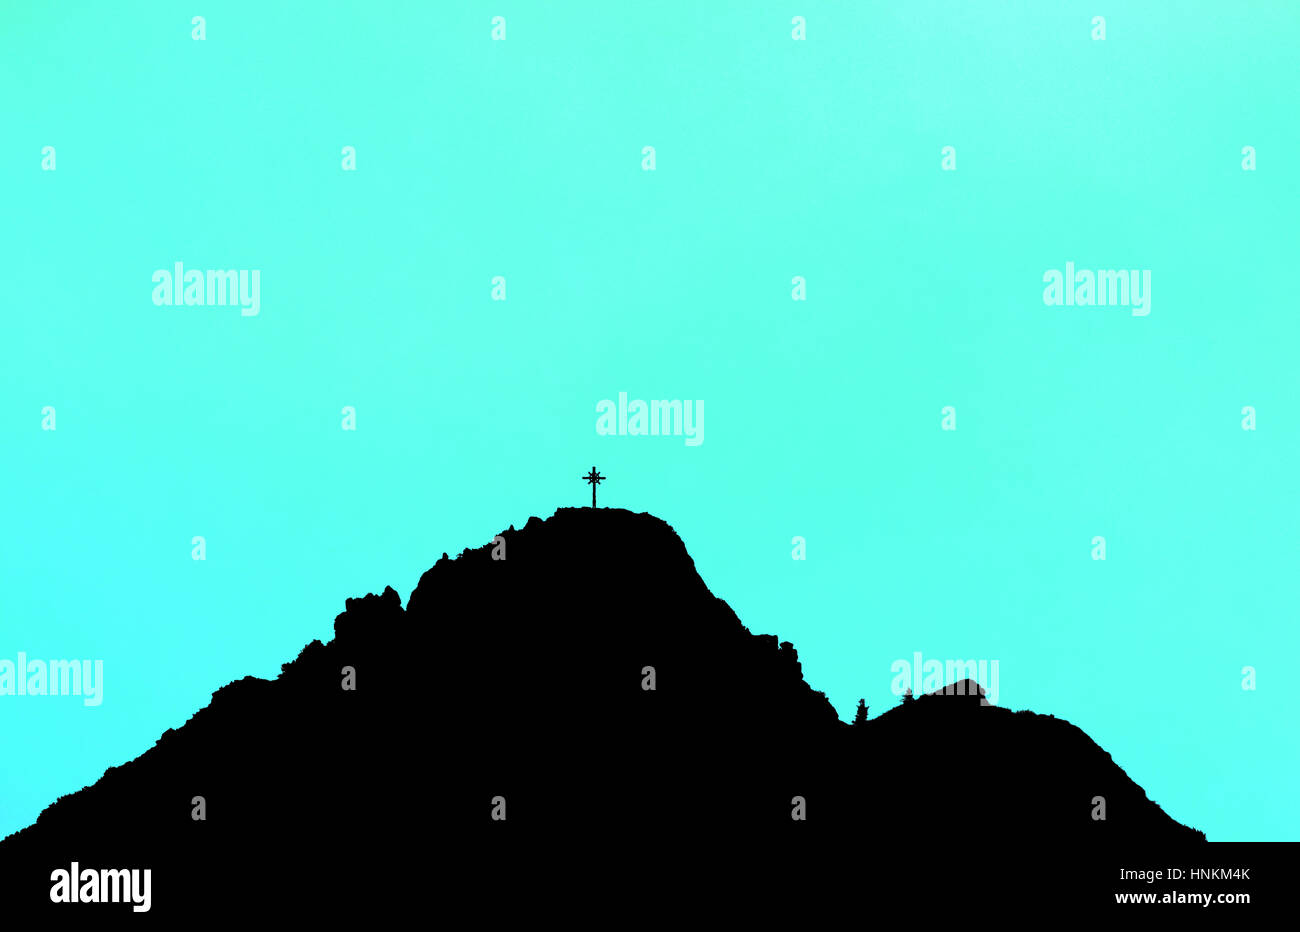 Black silhouette of mountain peak with summit cross. Cyan background. - Stock Image